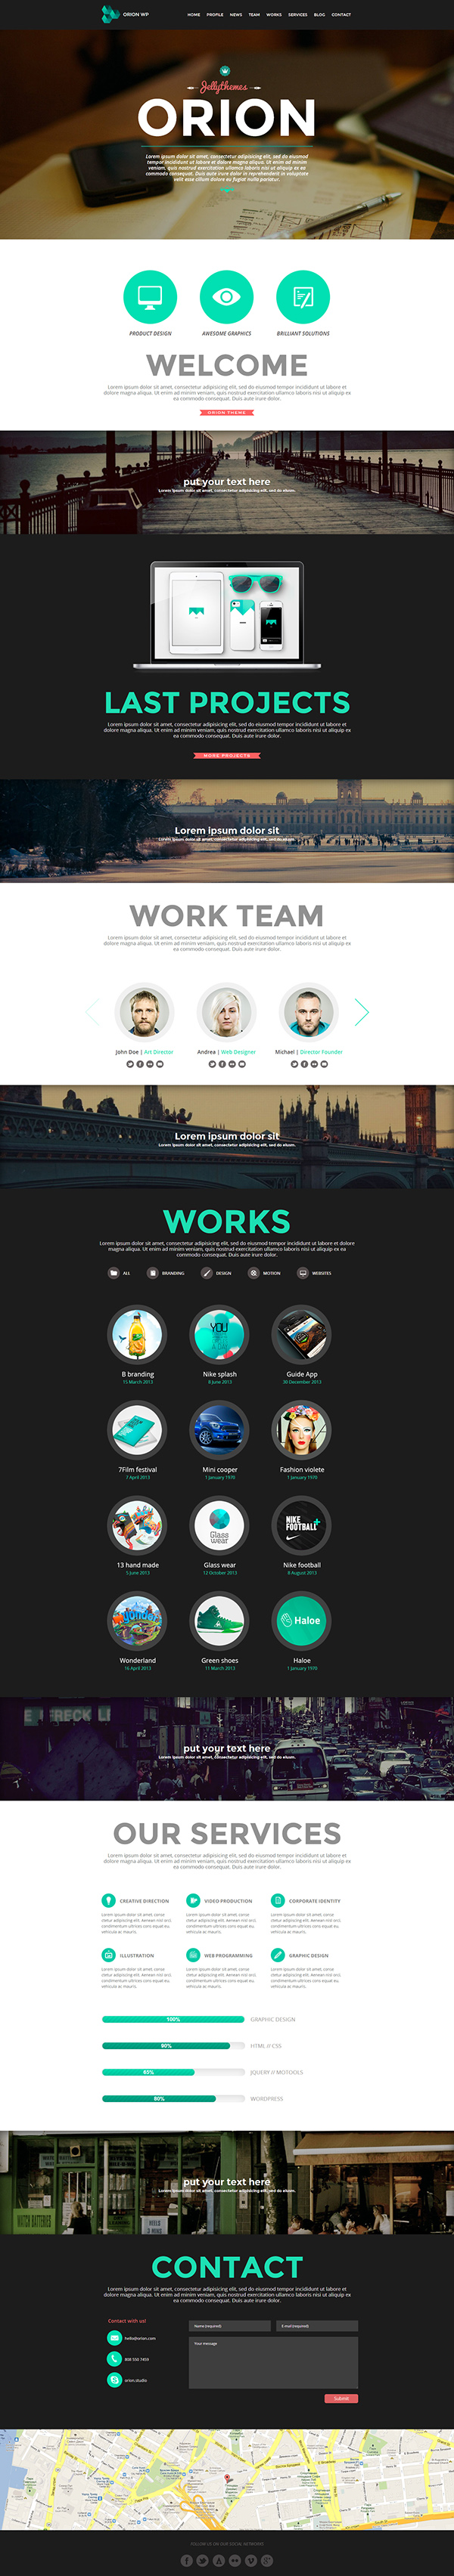 Orion - Responsive One Page WordPress Template